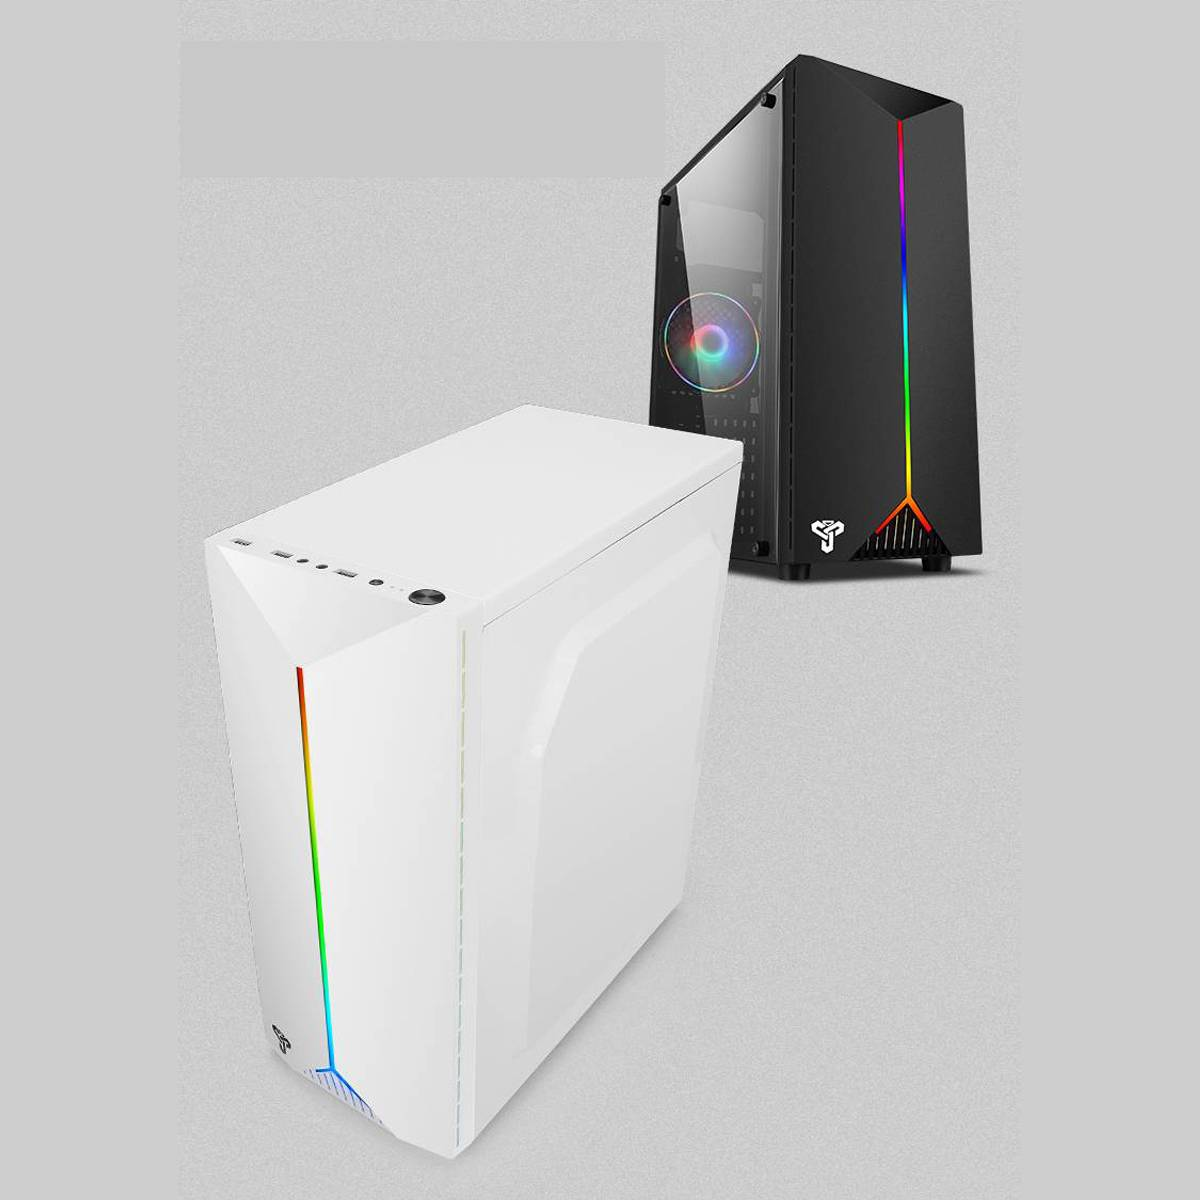 Gaming Pc Case Acrylic Transparent Side Panels Electric Contest Gaming Cooling Fan With RGB Belt Support USB 3.0 4